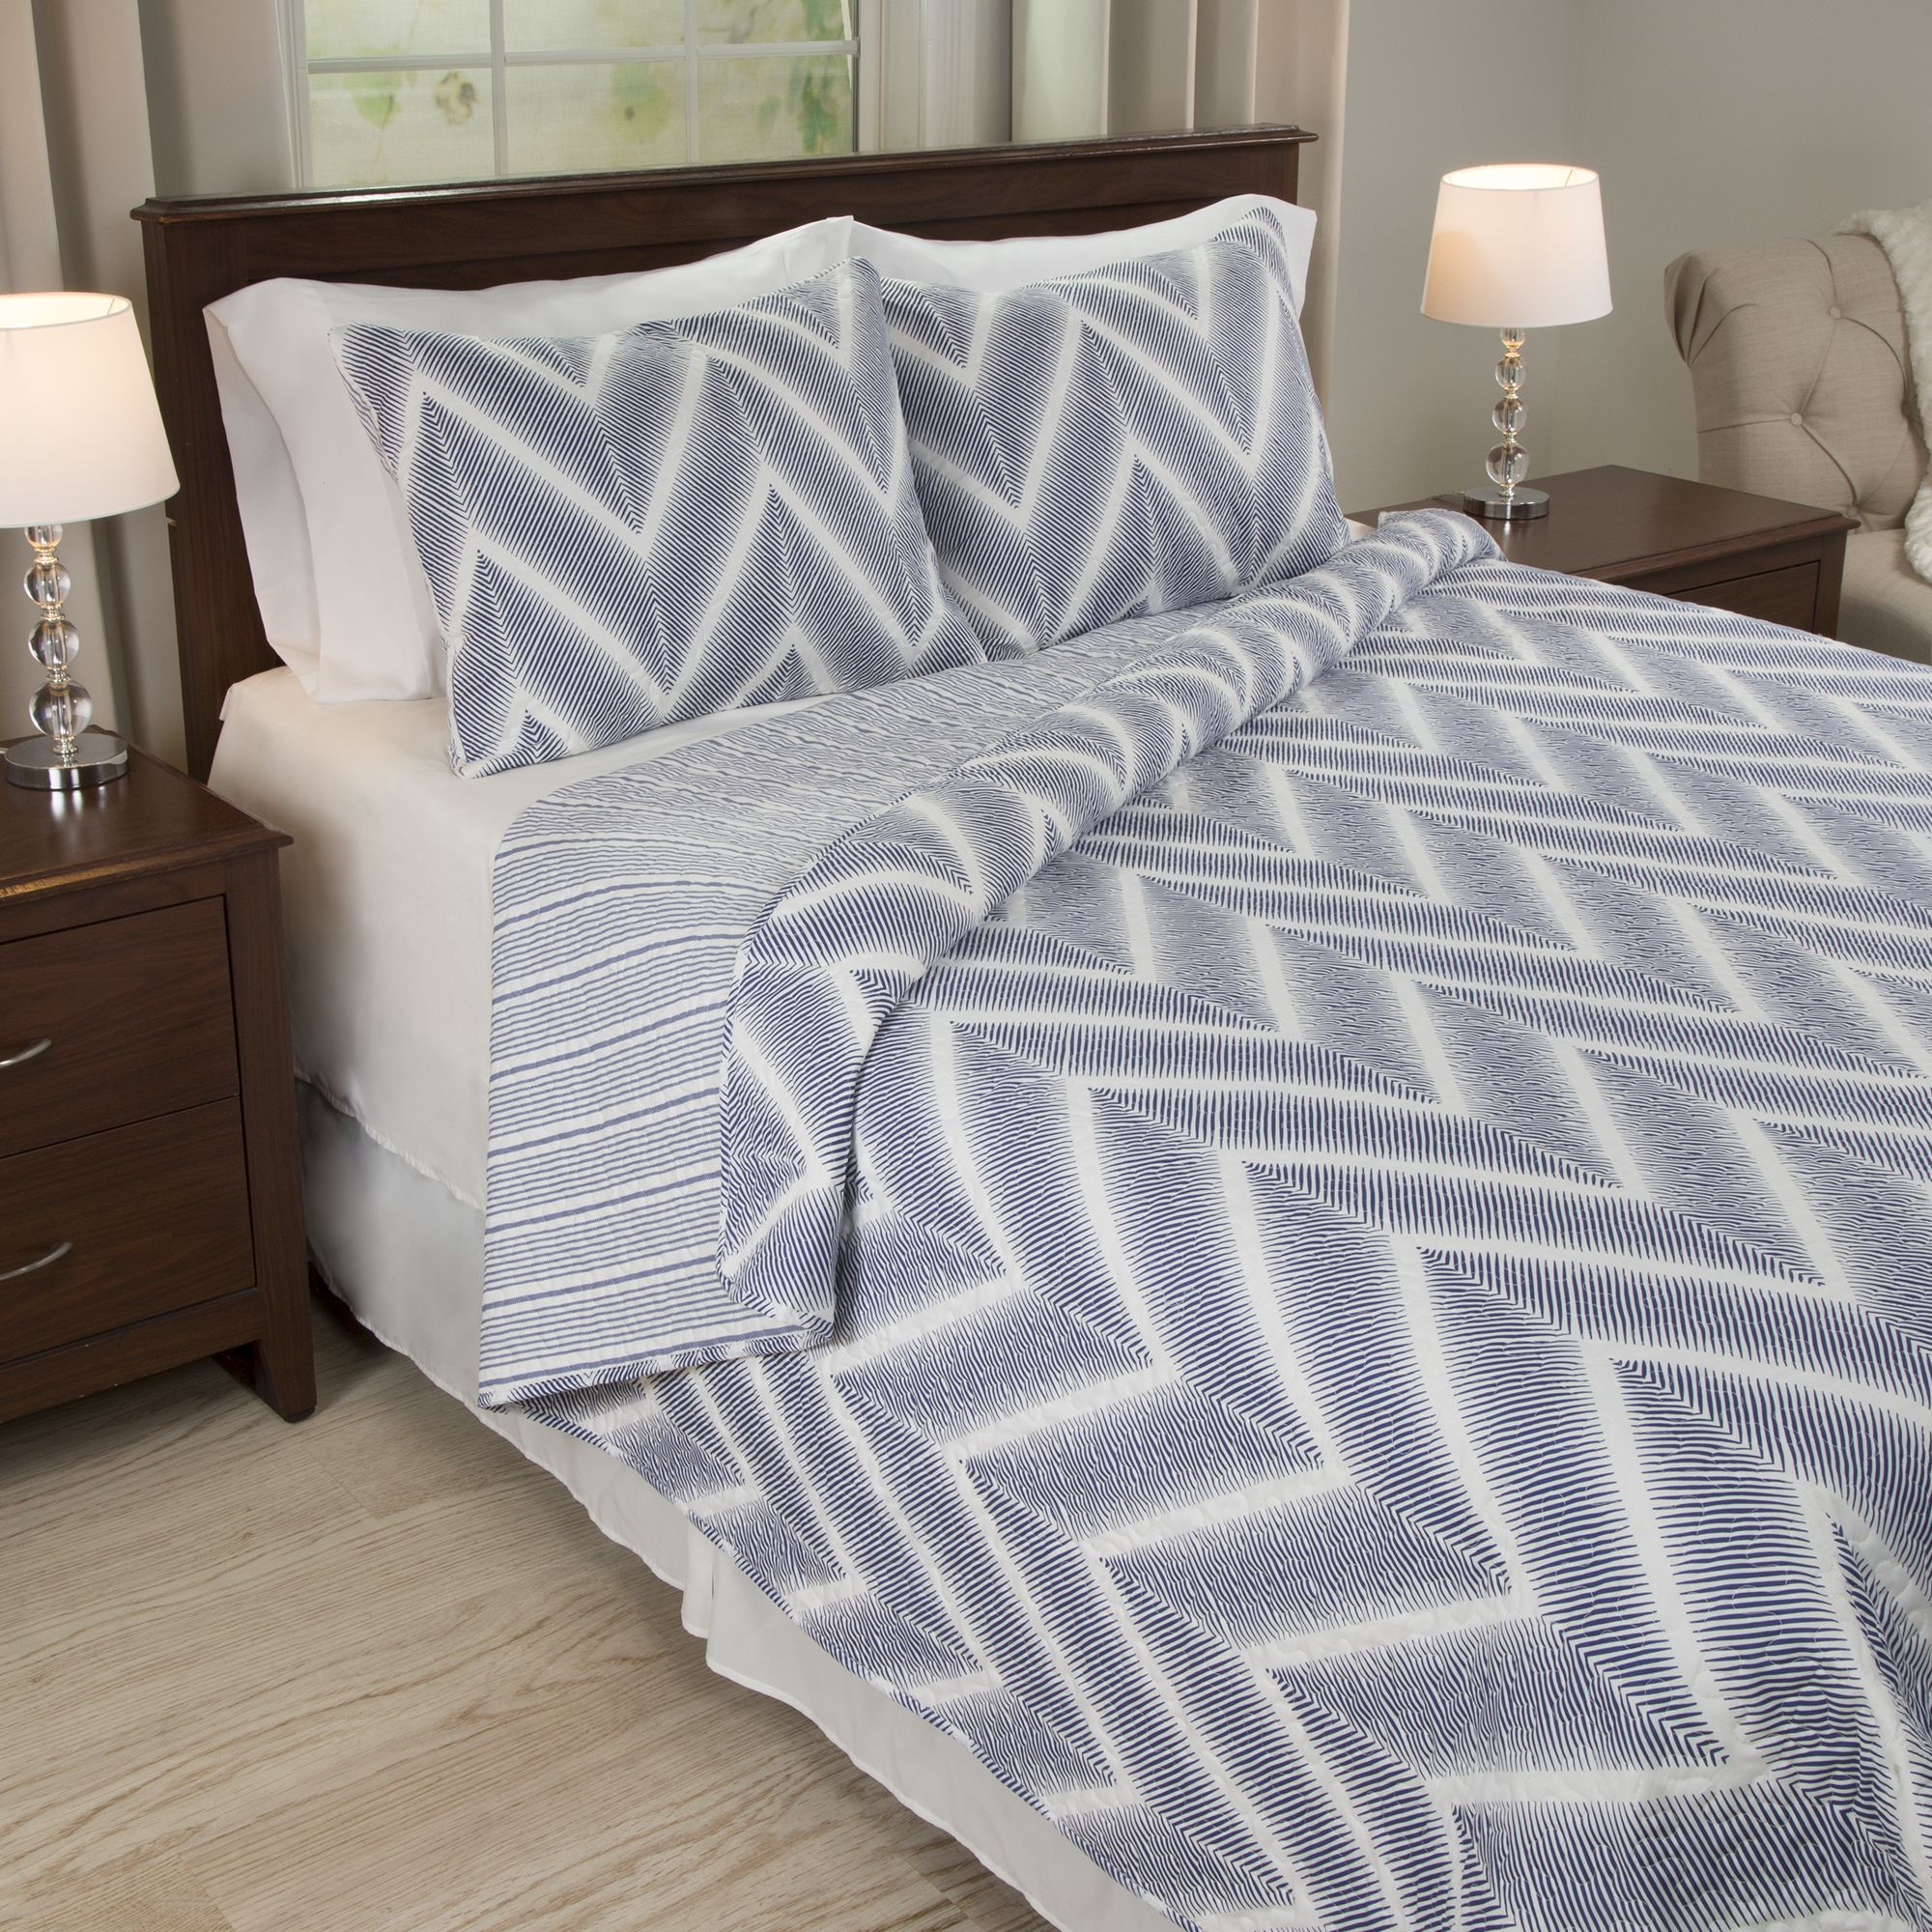 Lavish home oriana piece quilt set fullqueen gray products